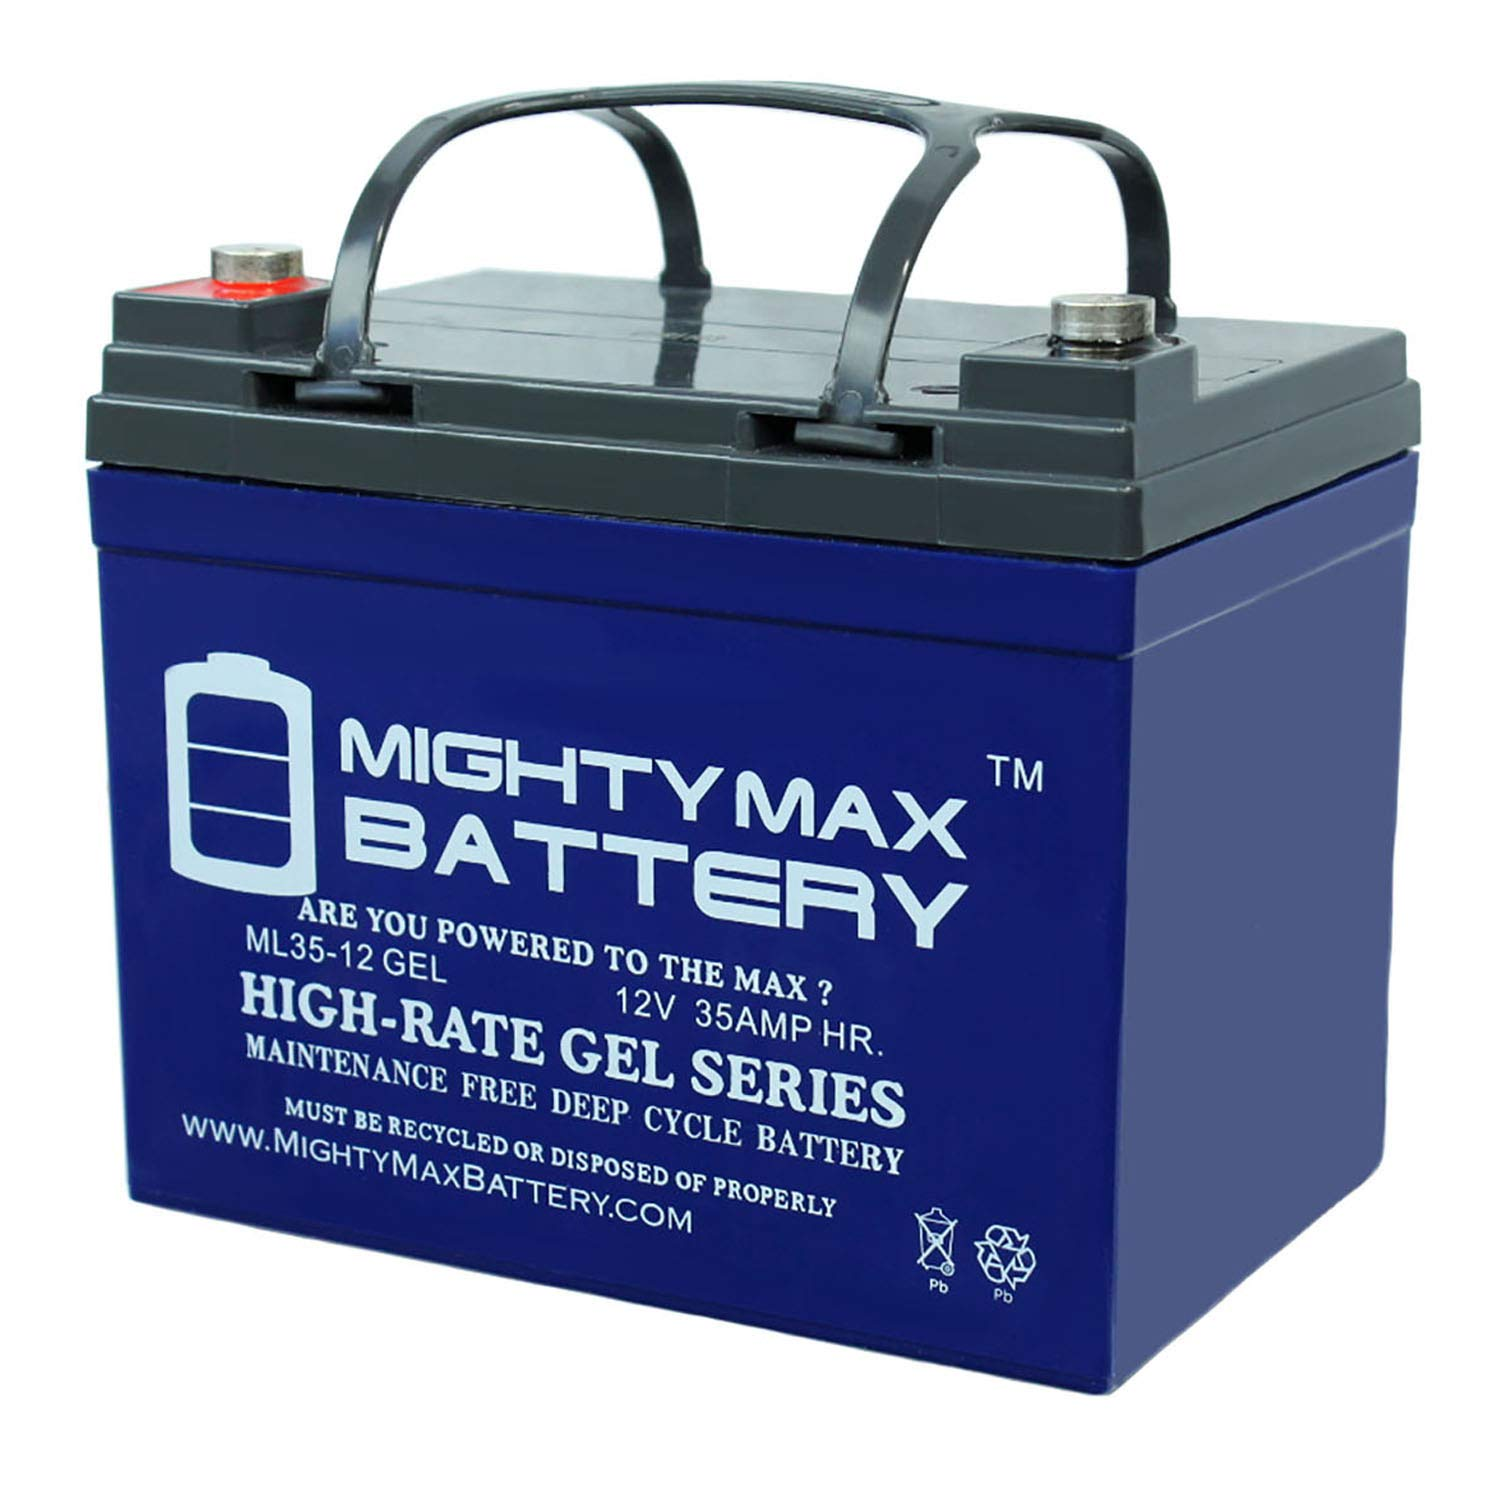 Amazon.com: Mighty Max Battery 12V 35AH Gel Battery Replaces ... on troy-bilt pony parts diagram, troy-bilt pony drive belt diagram, wheel horse rototiller belt diagram,